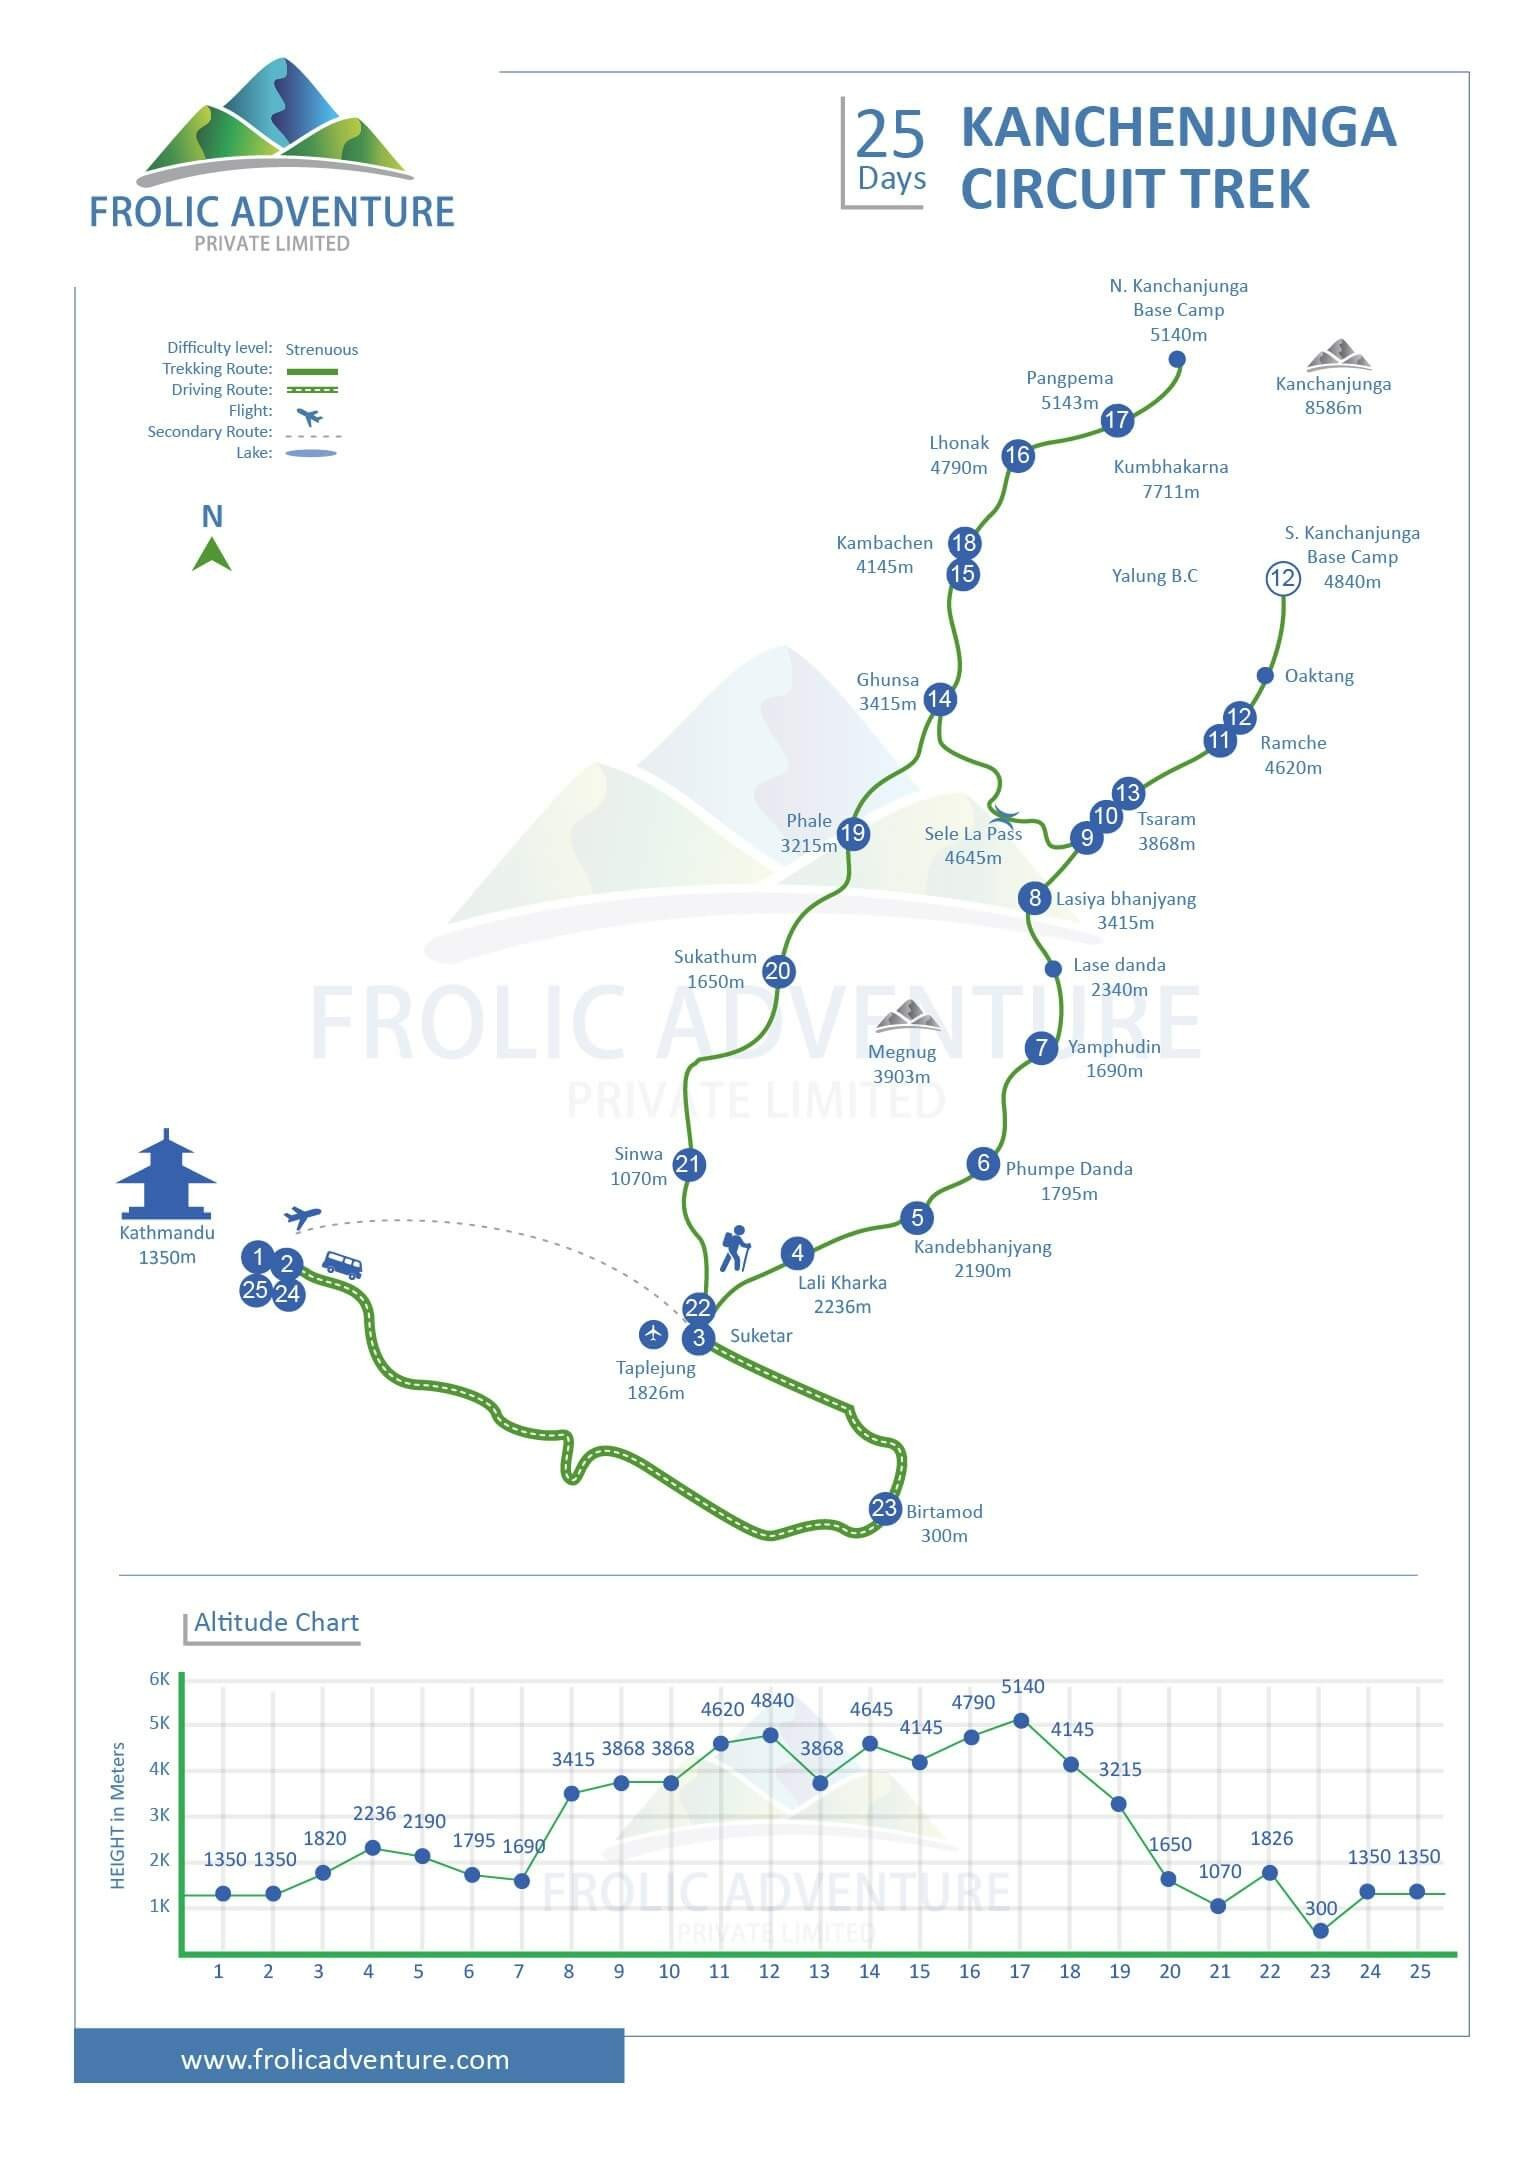 Kanchenjunga Circuit Trek map